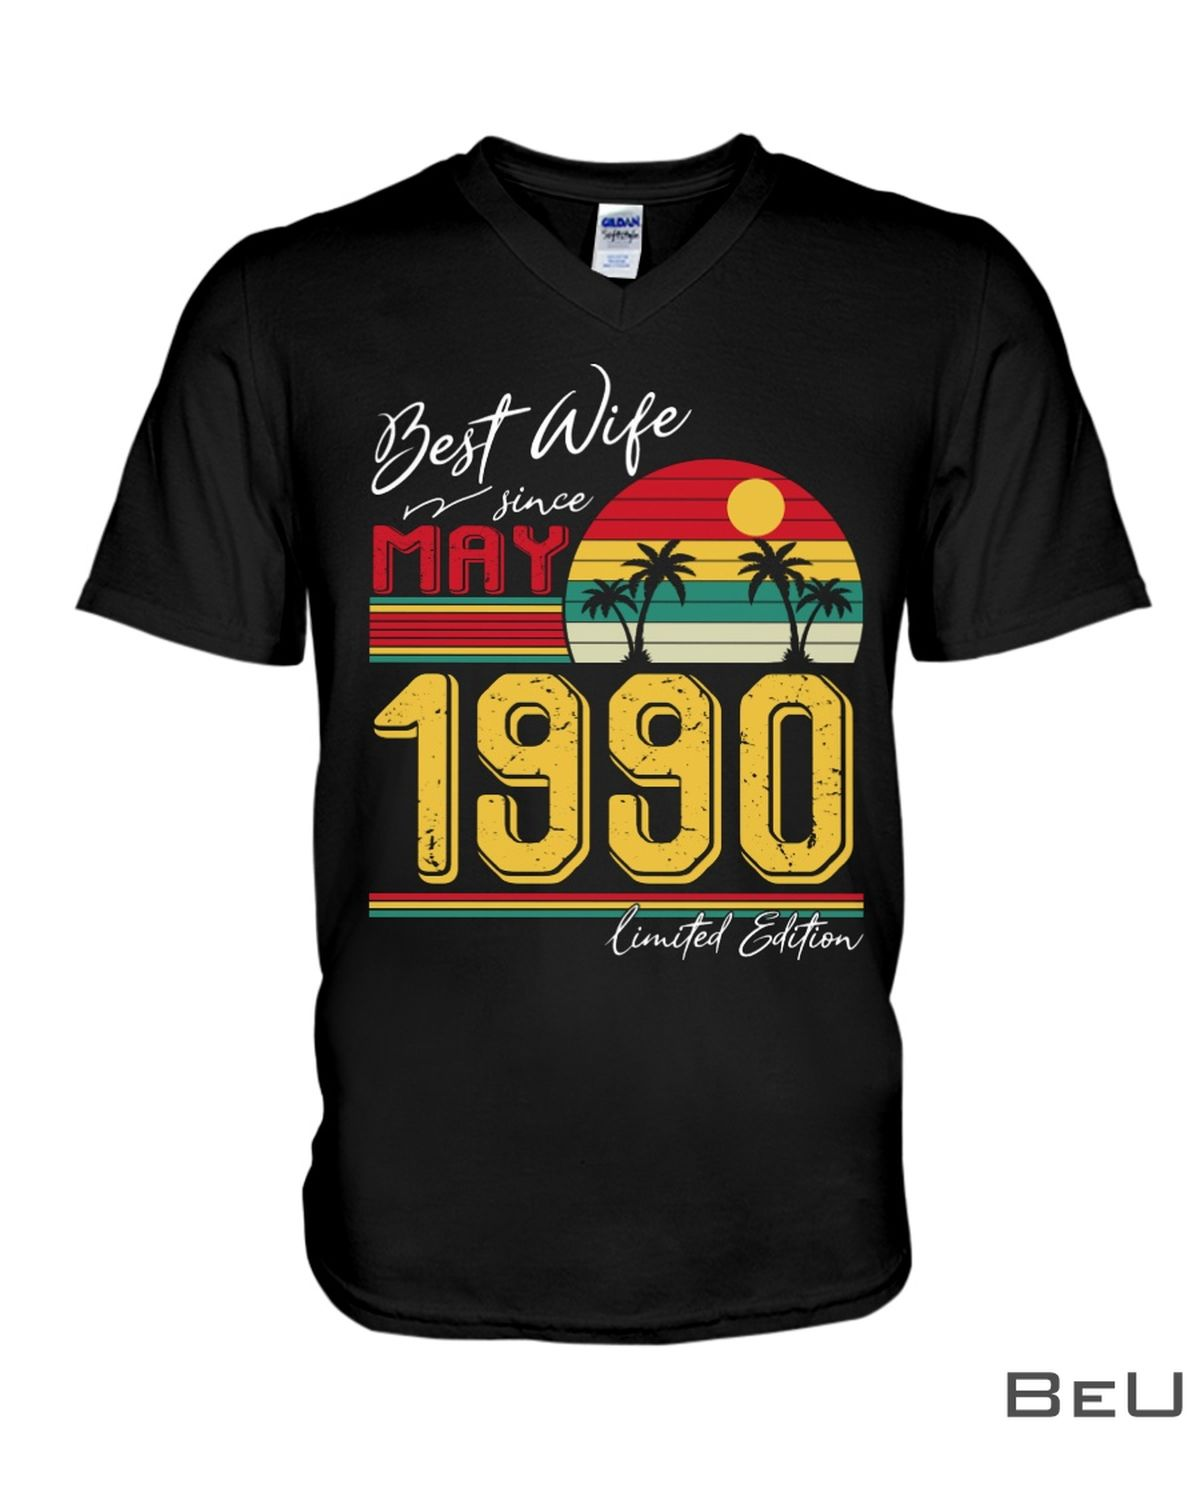 Best Wife Since May 1990 Shirtz